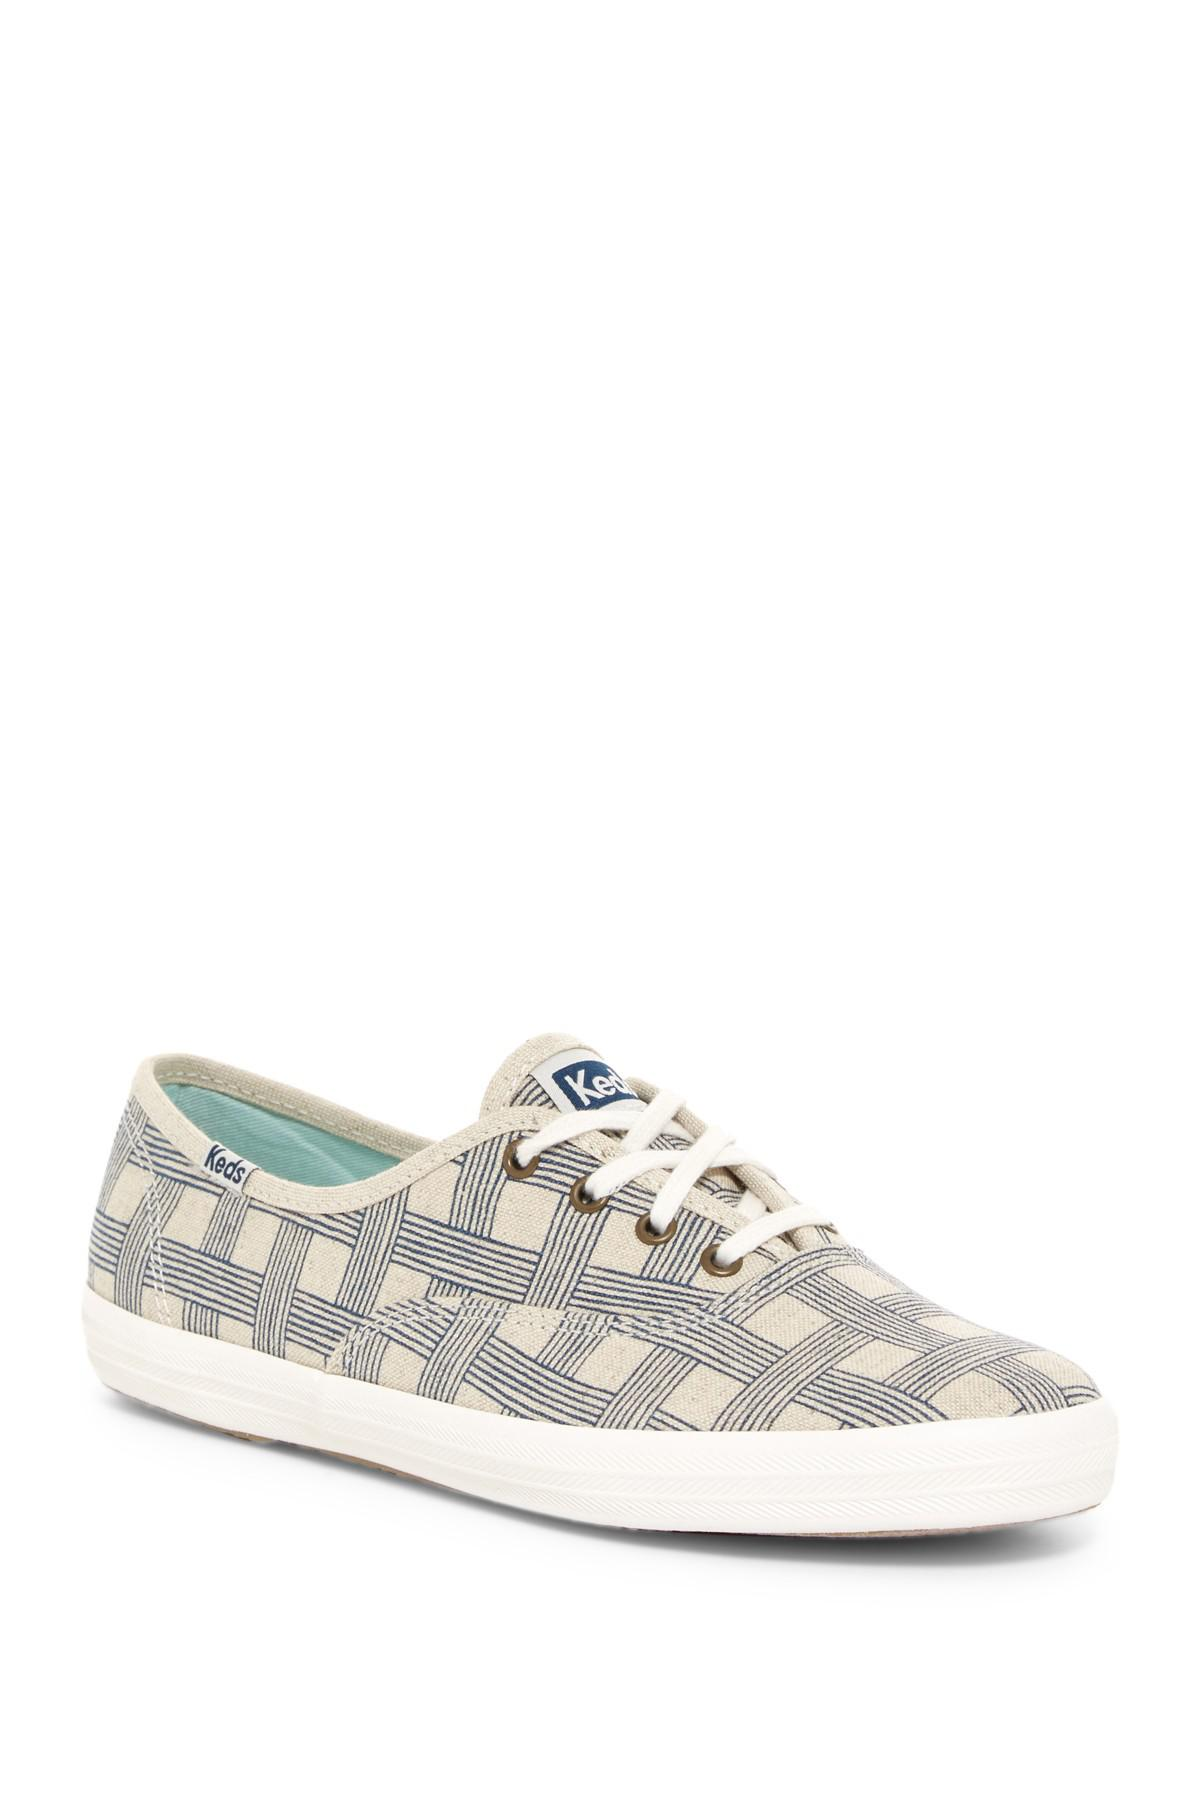 Keds Champion Leather Oxford Shoes